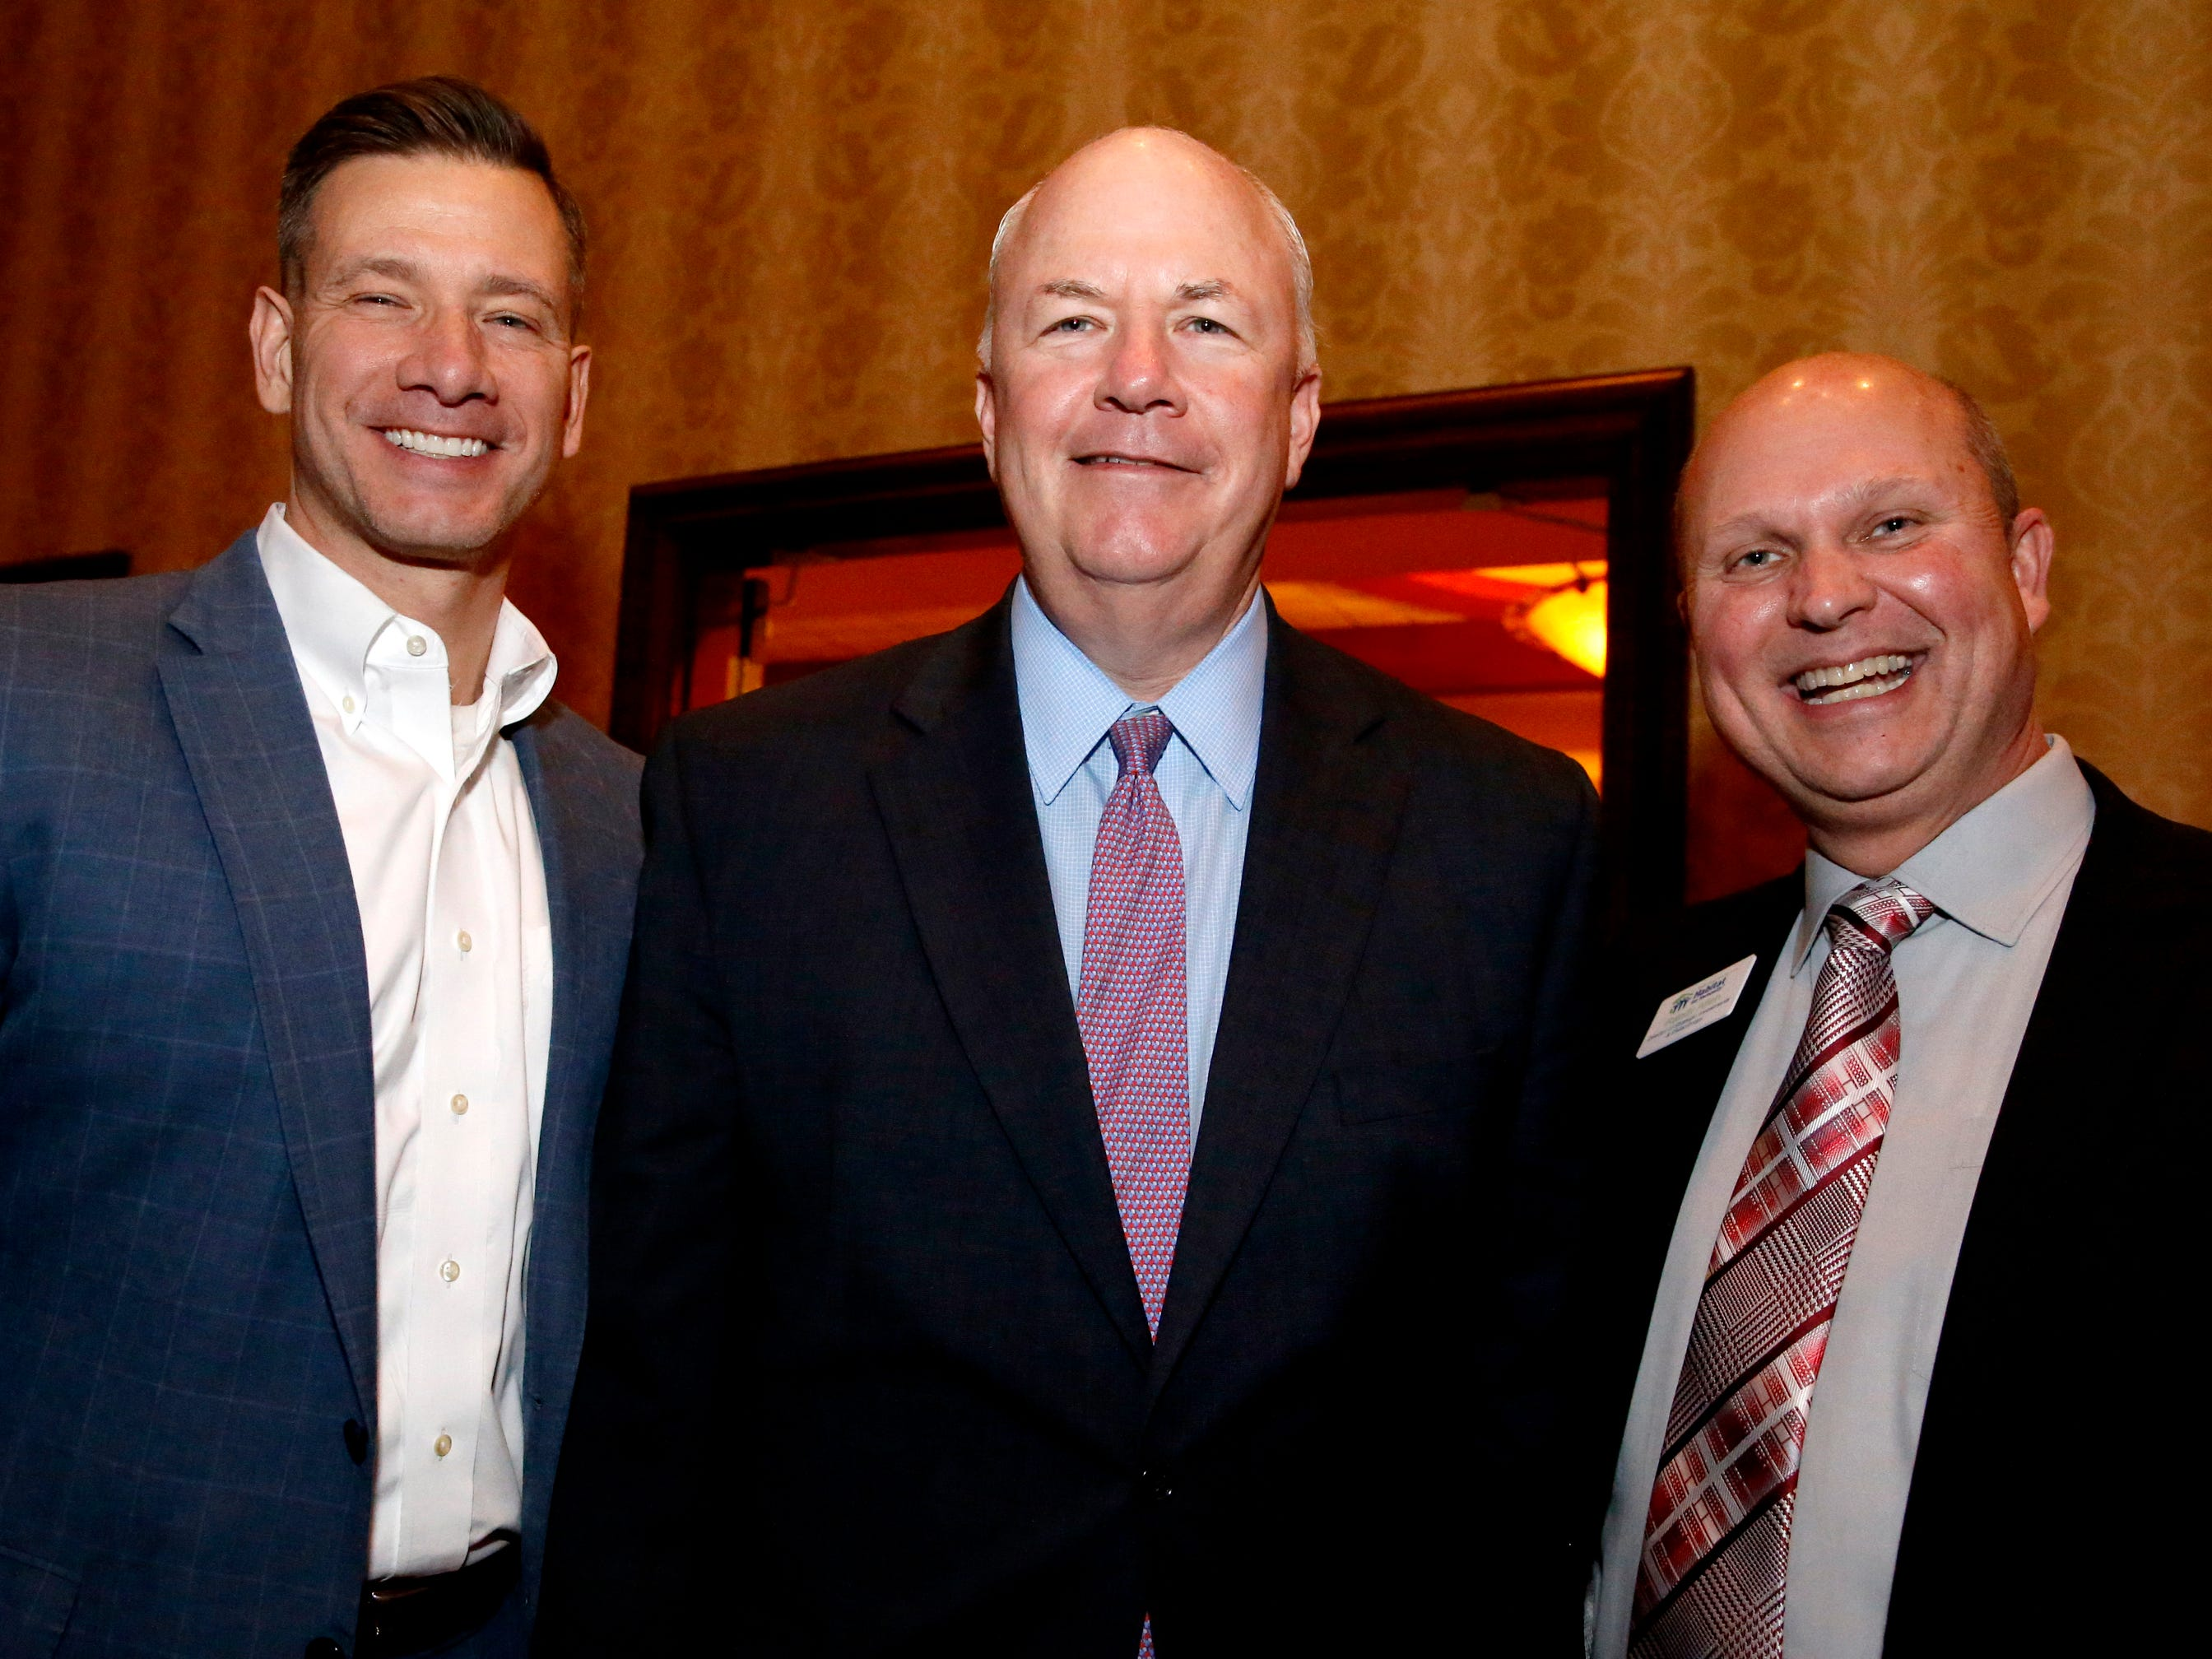 Ronnie Martin, left, Paul Latter, center and Randy Allen at Business at Its Best held on Wednesday, Jan. 31, 2019 at Embassy Suites.